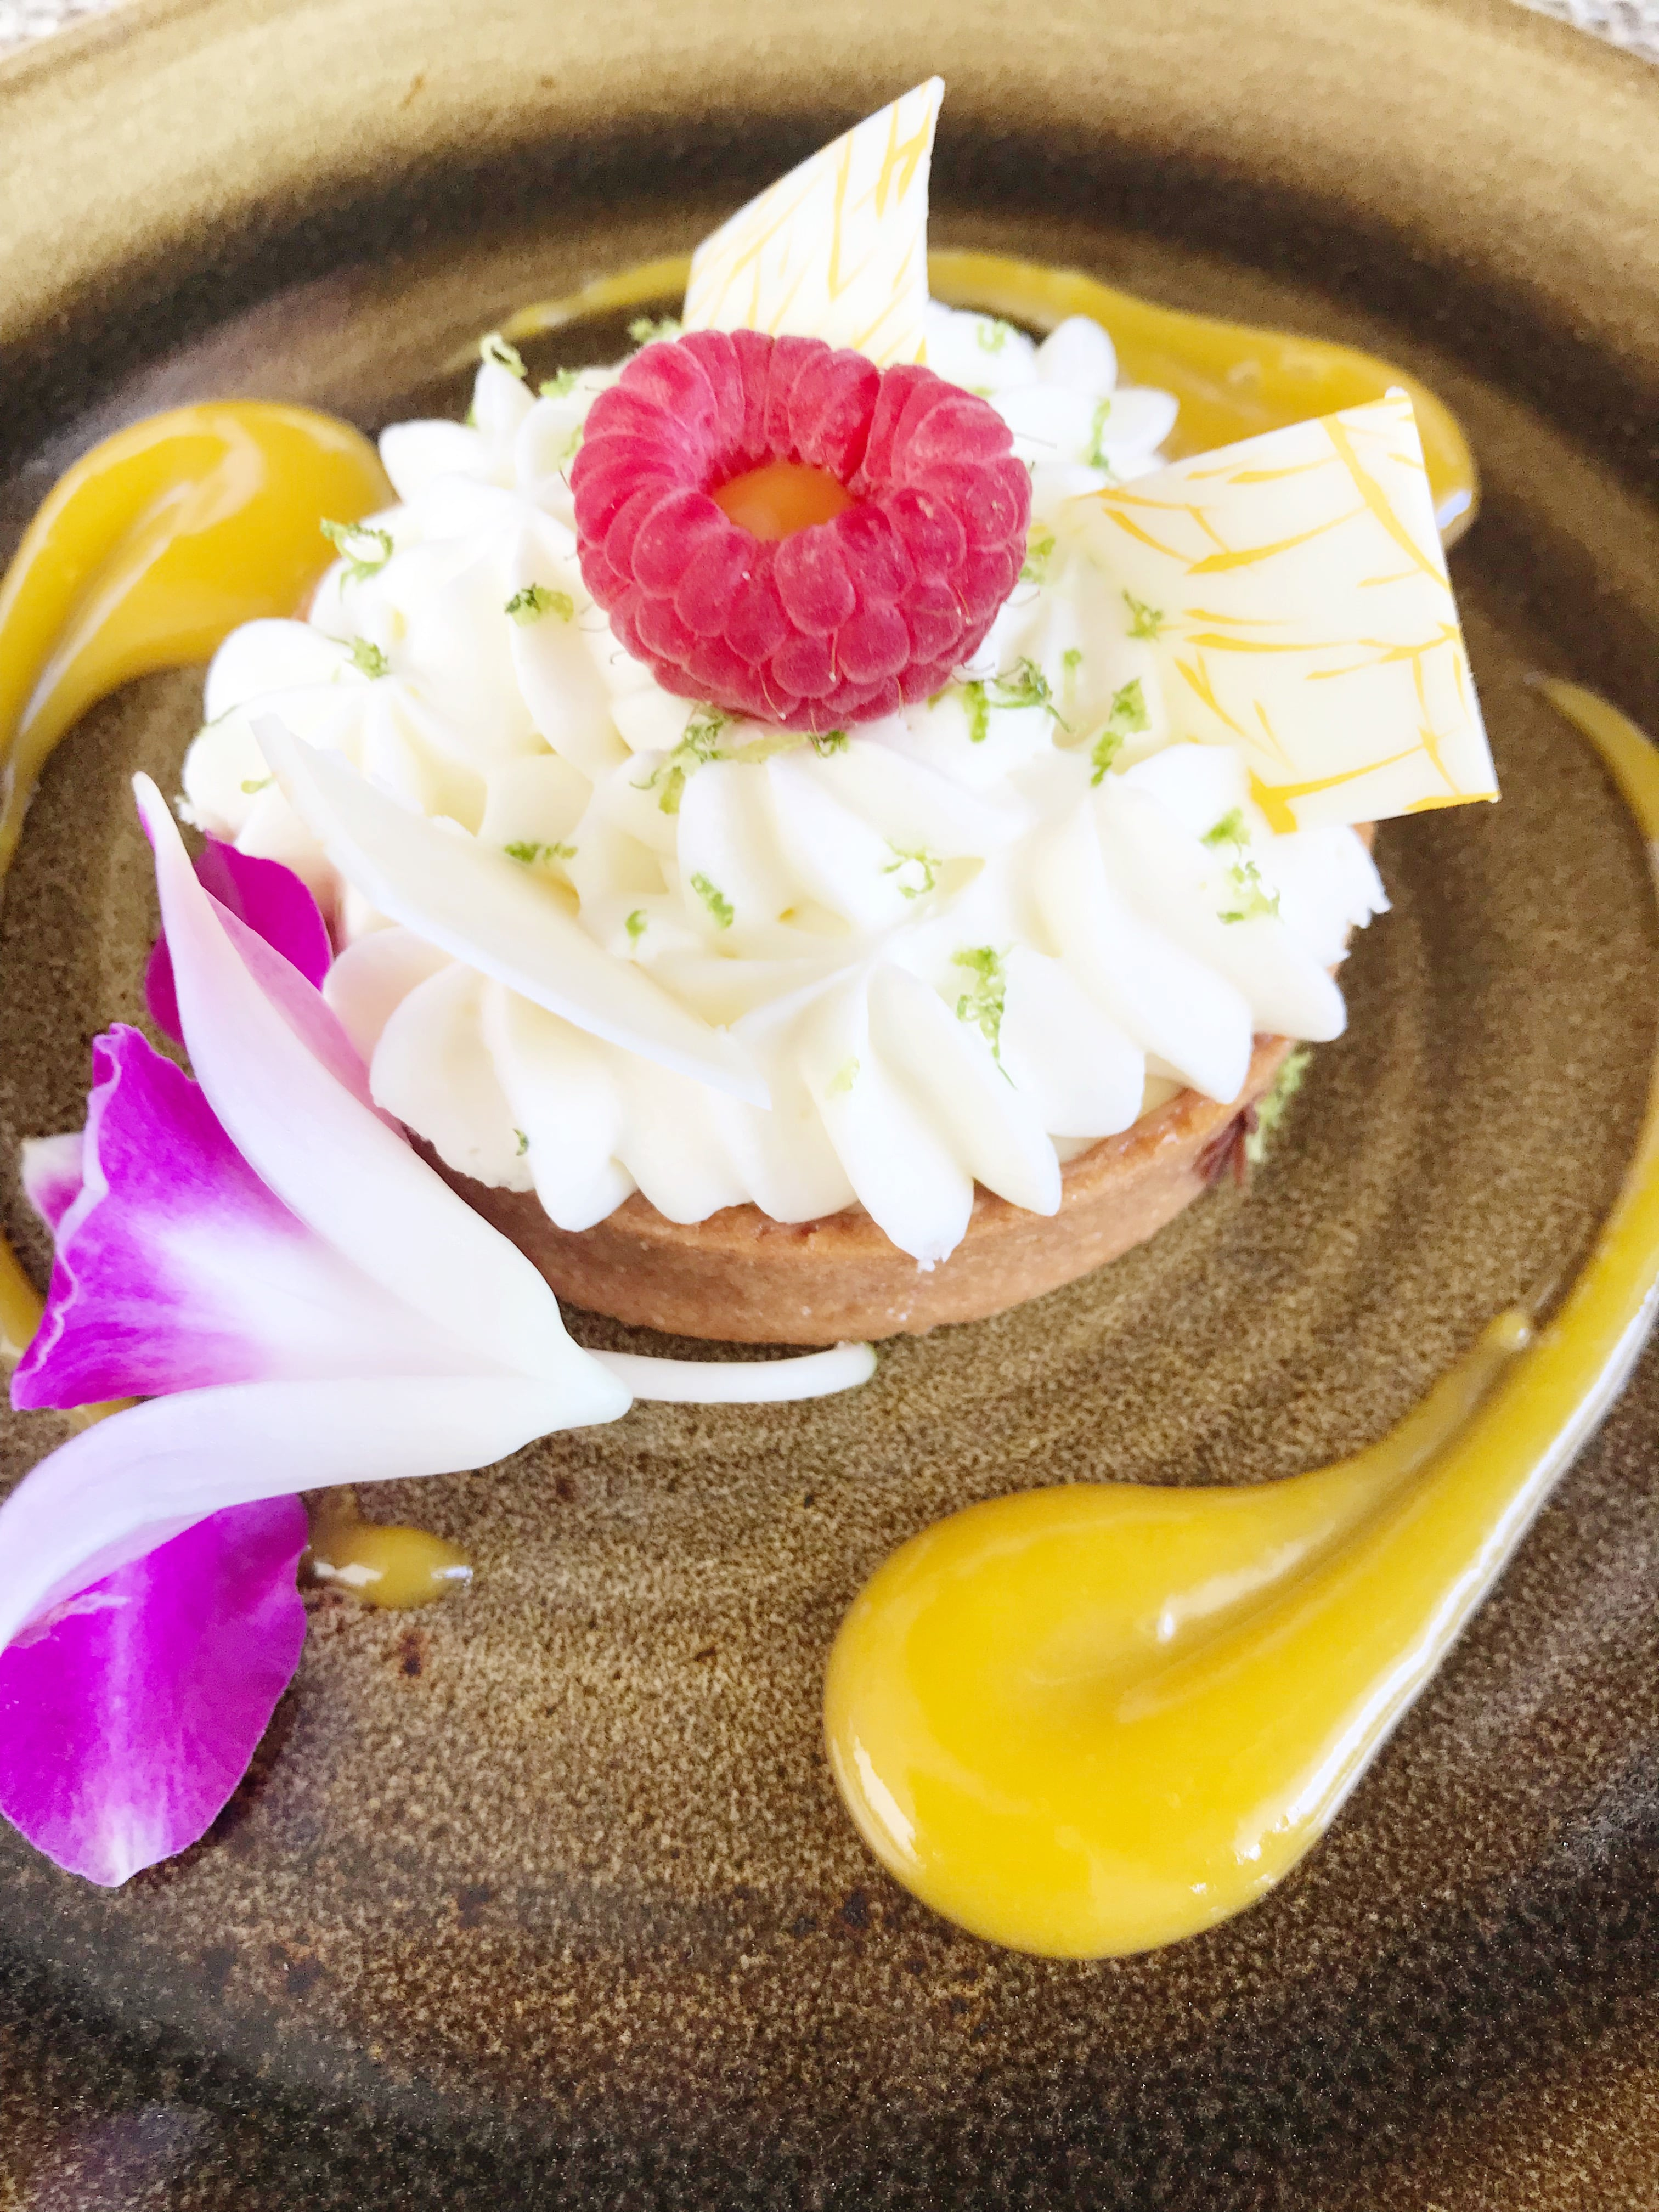 Eating At Halekulani's Restaurant House Without A Key, Key Lime Pie tartlette on a plate with a pink flower